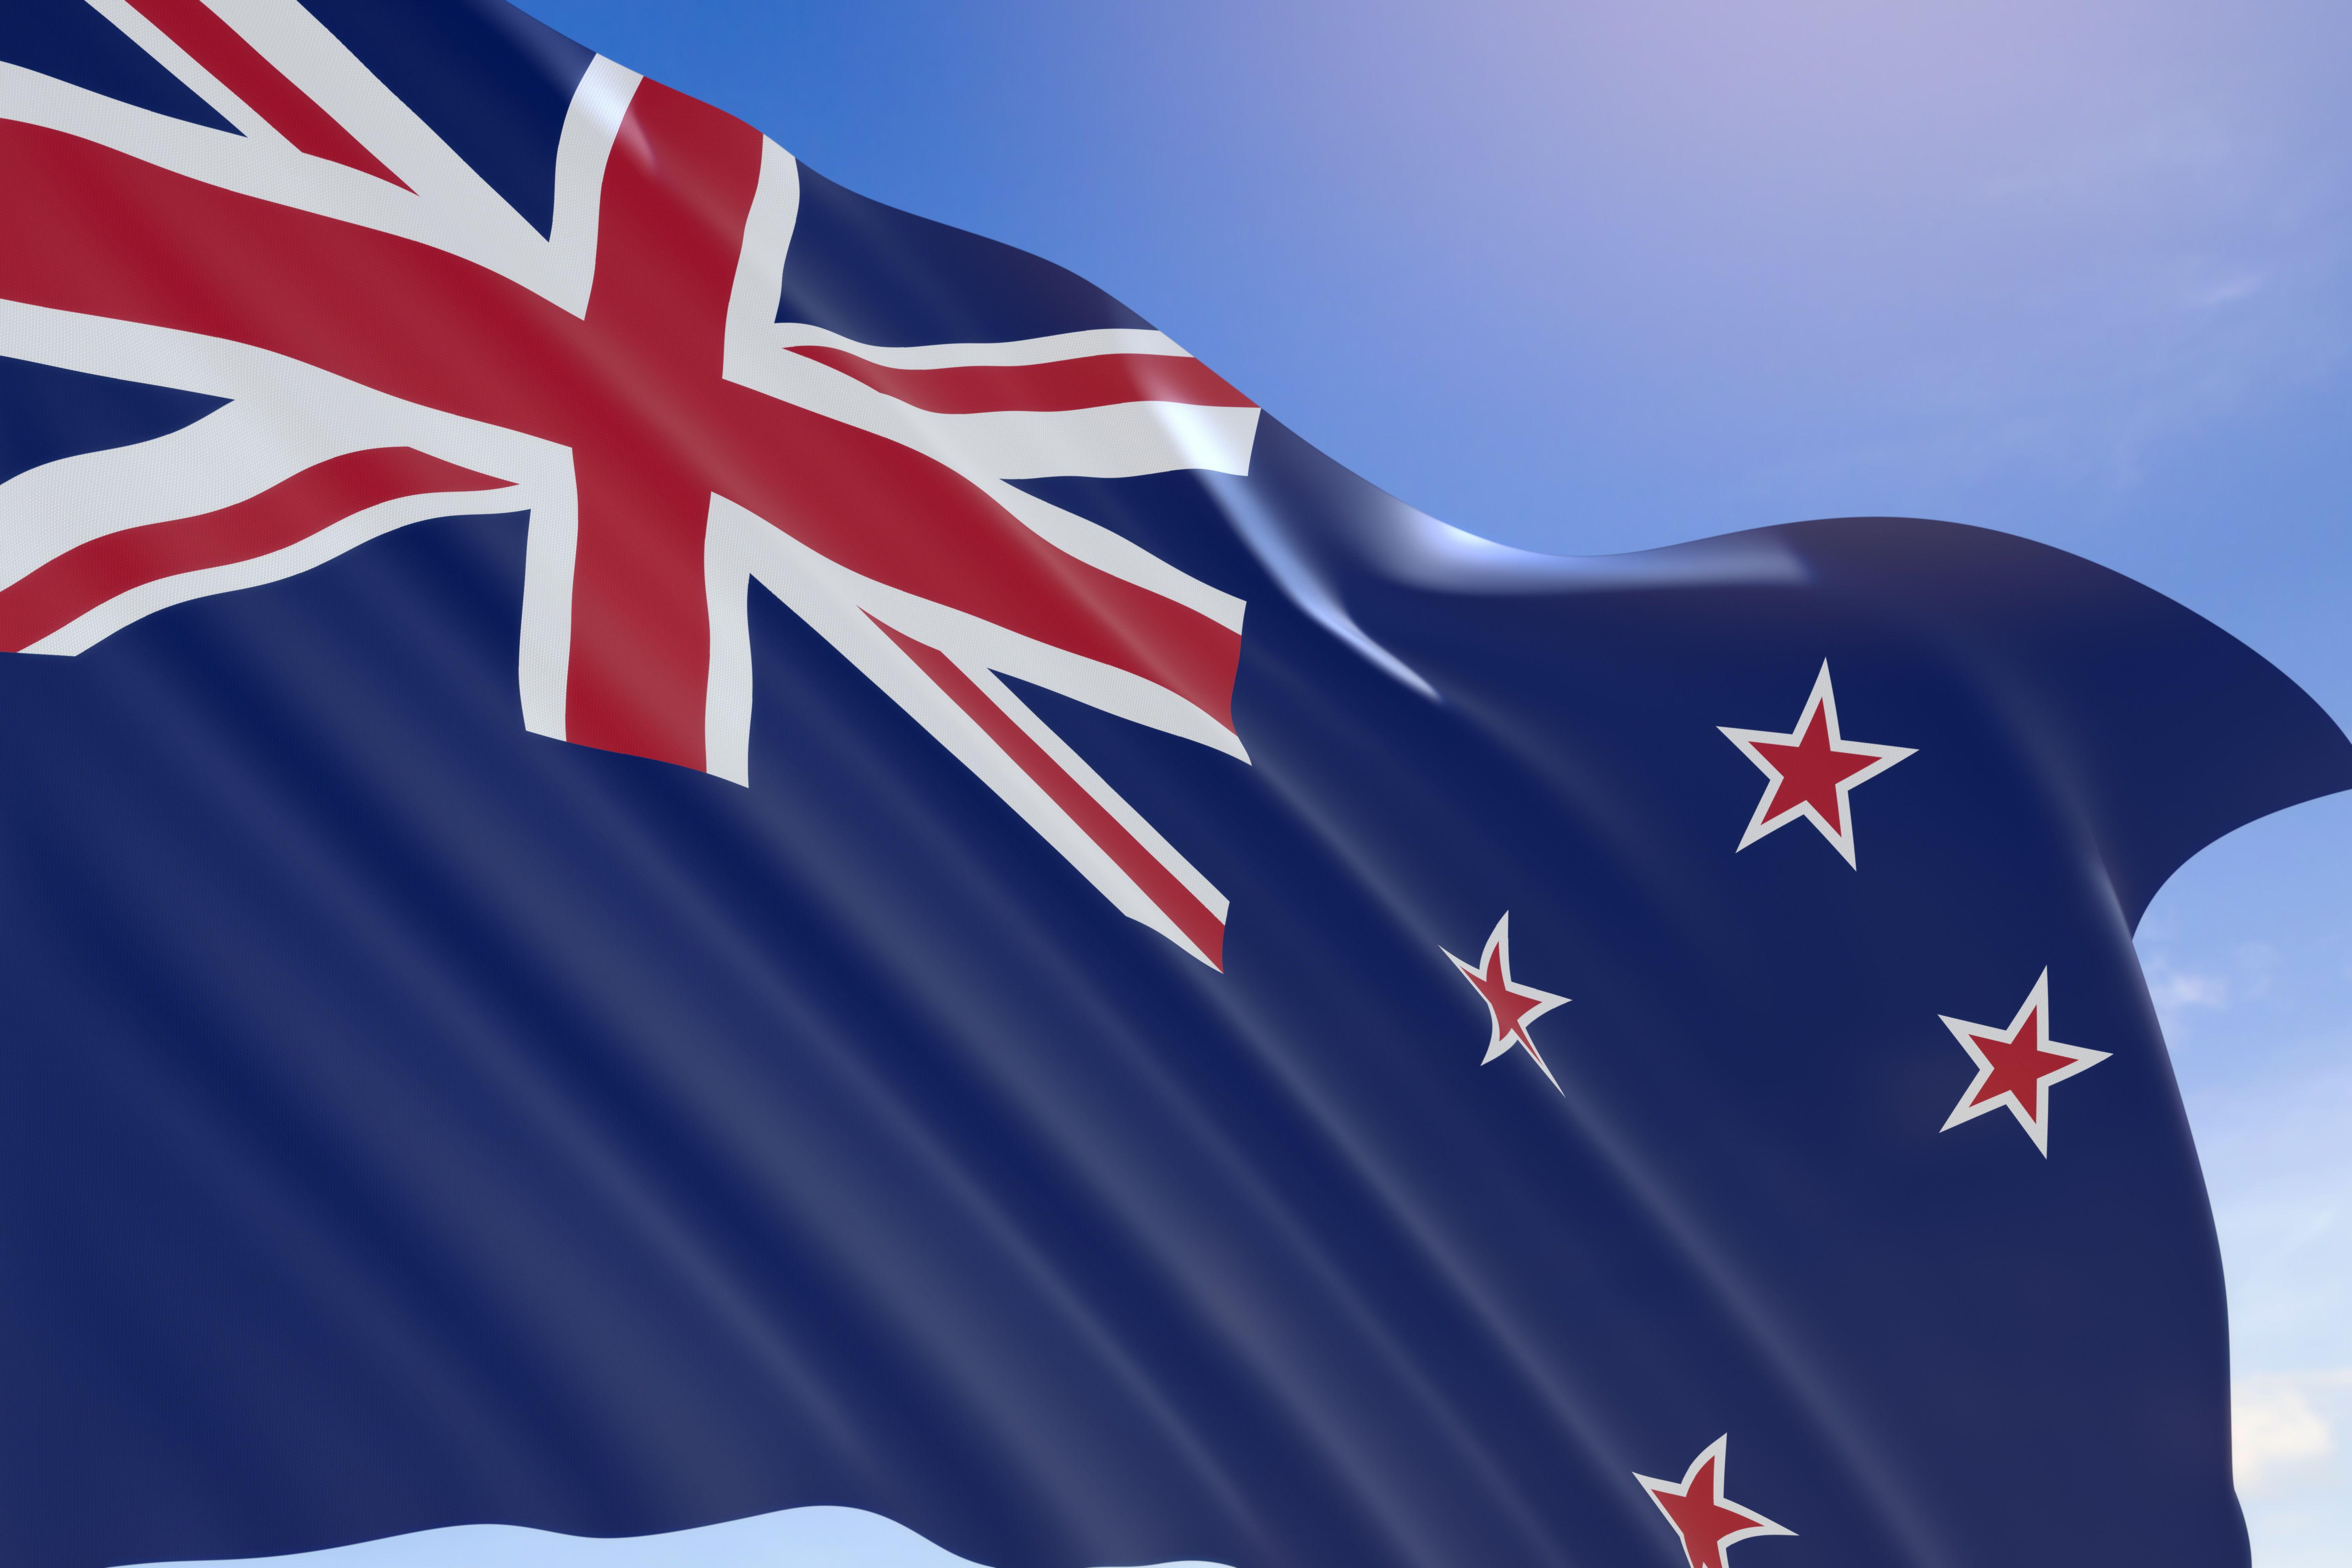 New Zealand Diplomat On U.S. Democrats: 'Get Your S**t Together Or We Will All